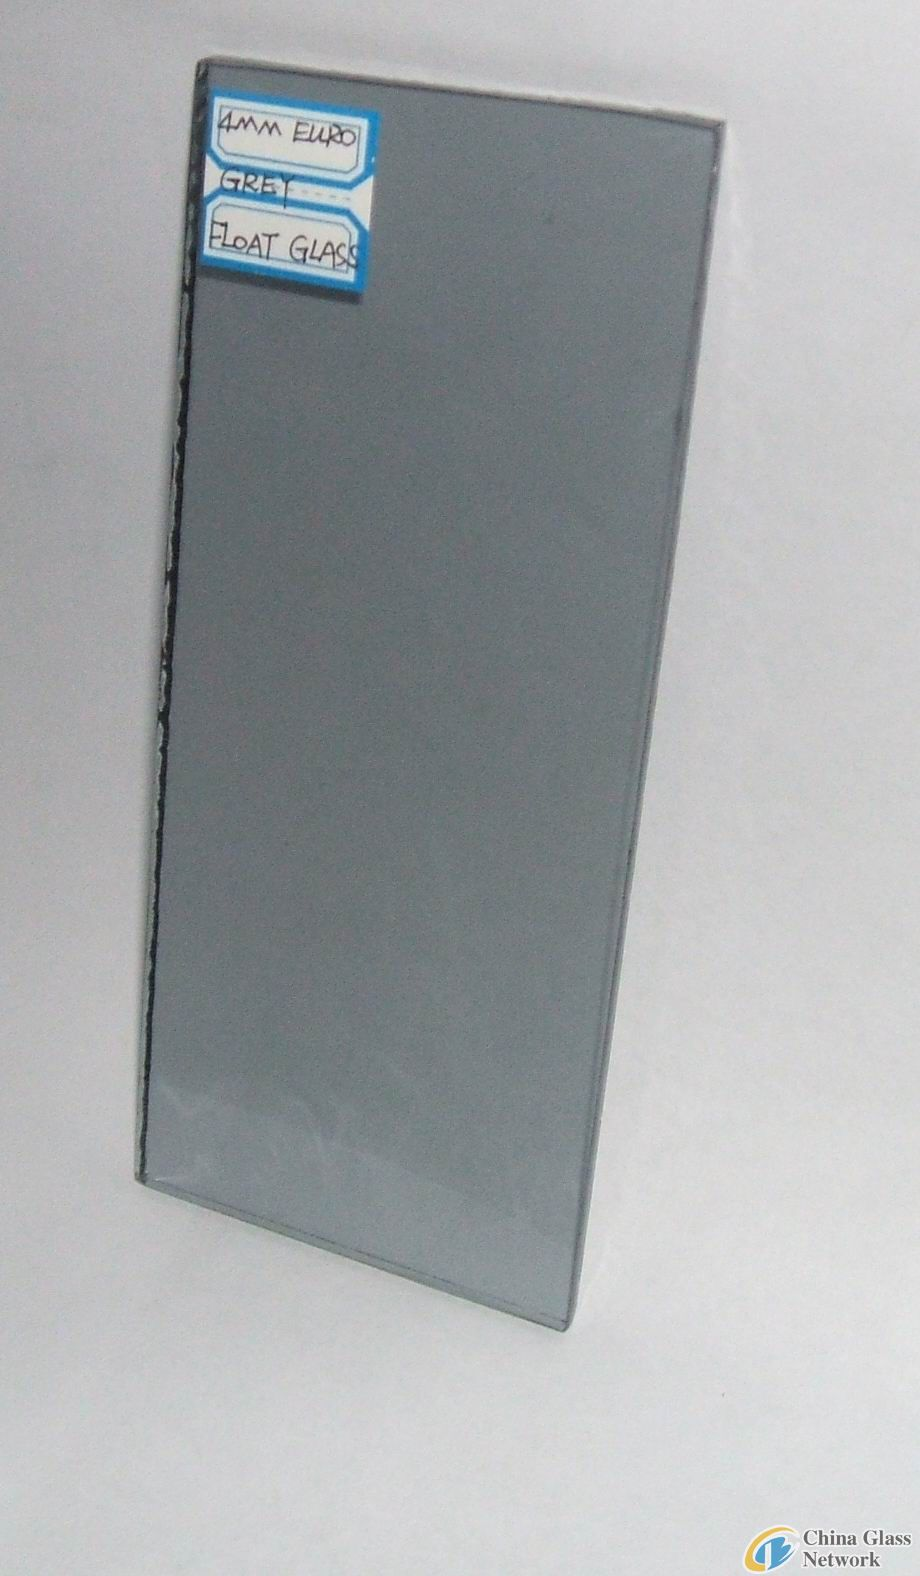 Euro gray float glass/light grey tinted glass